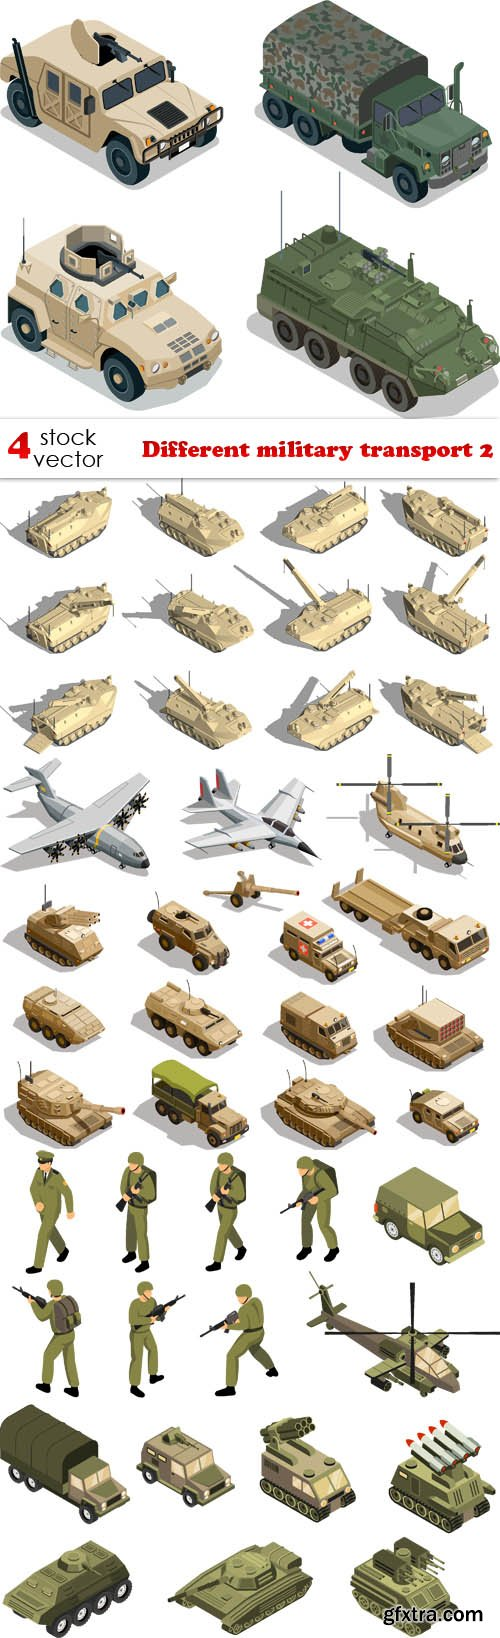 Vectors - Different military transport 2